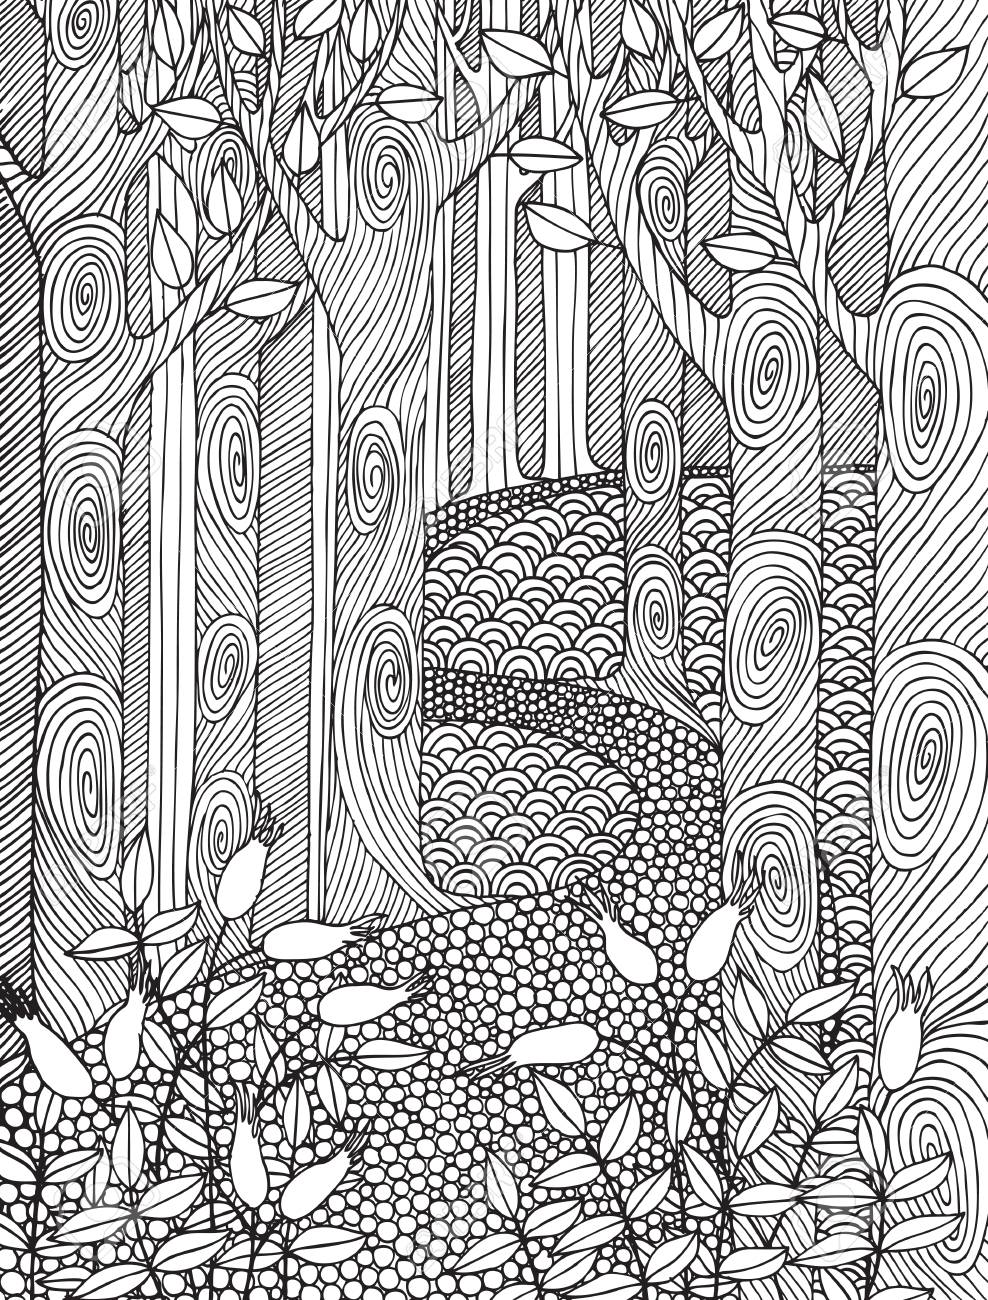 Adult Coloring Book Page Design With Forest Trees. Coloring Book ...